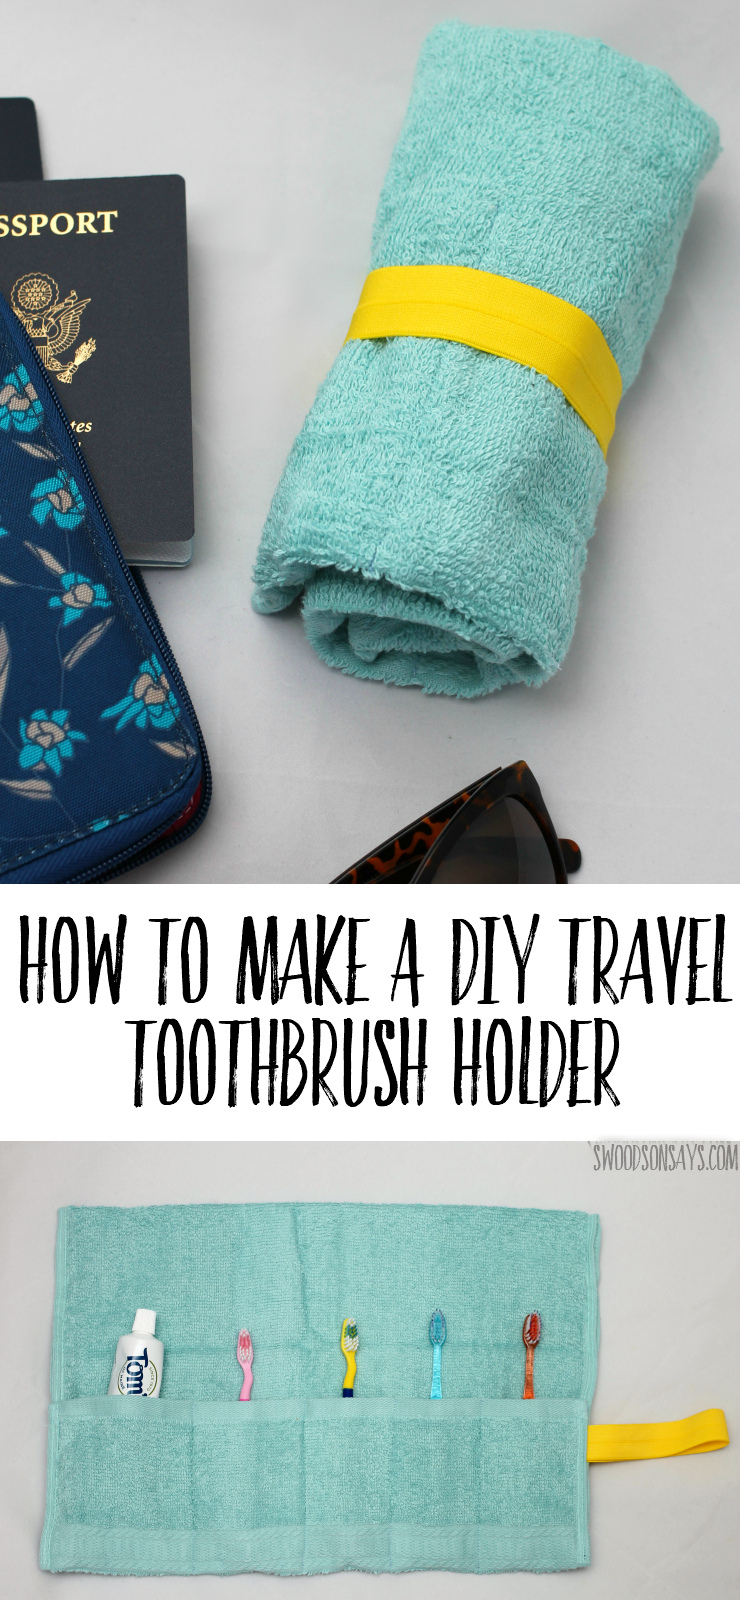 How To Make A DIY Travel Toothbrush Holder - follow this easy beginner sewing tutorial and upcycle a hand towel. This is a great sewing project for travel or cheap handmade gift, it is useful and easy to personalize! #sewing